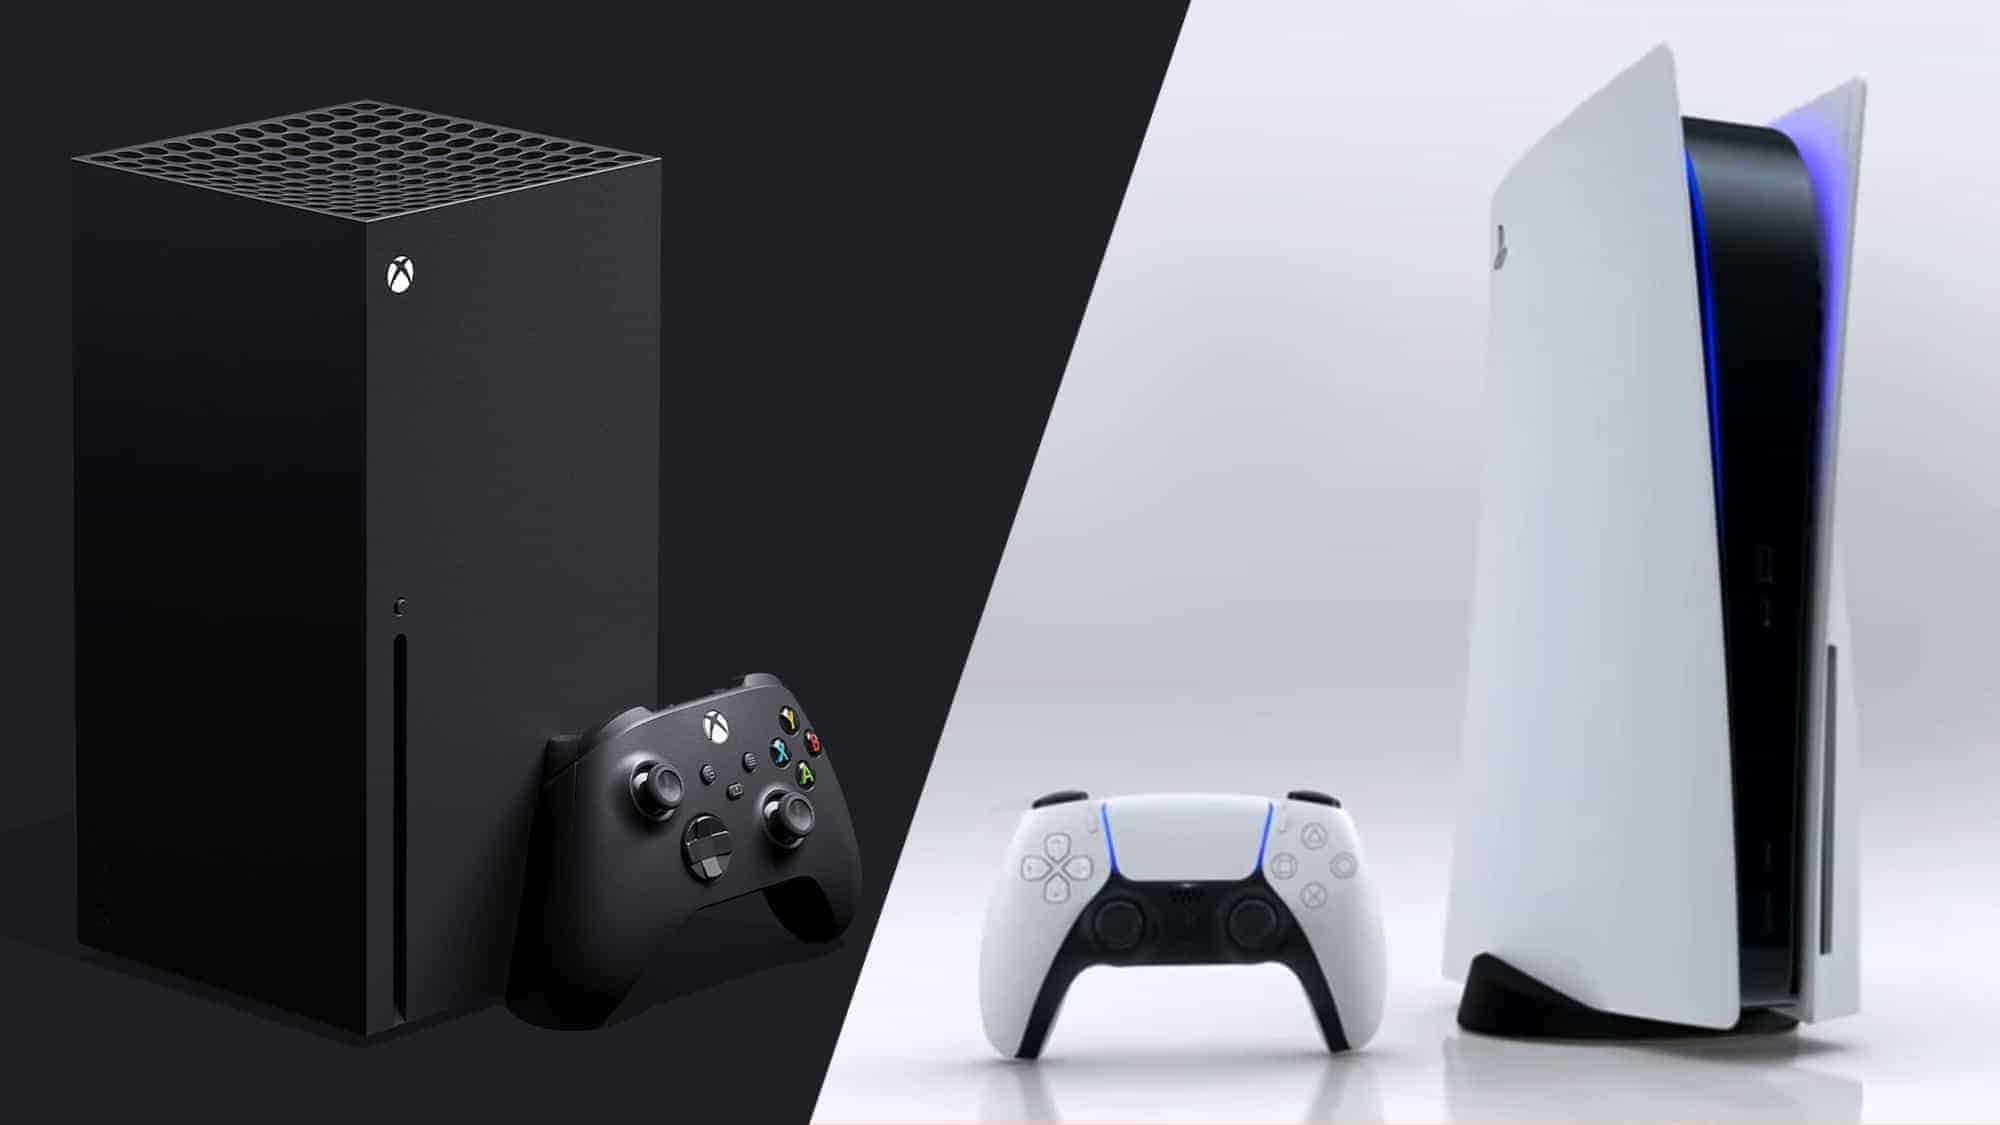 Xbox Series X and PS5 side-by-side